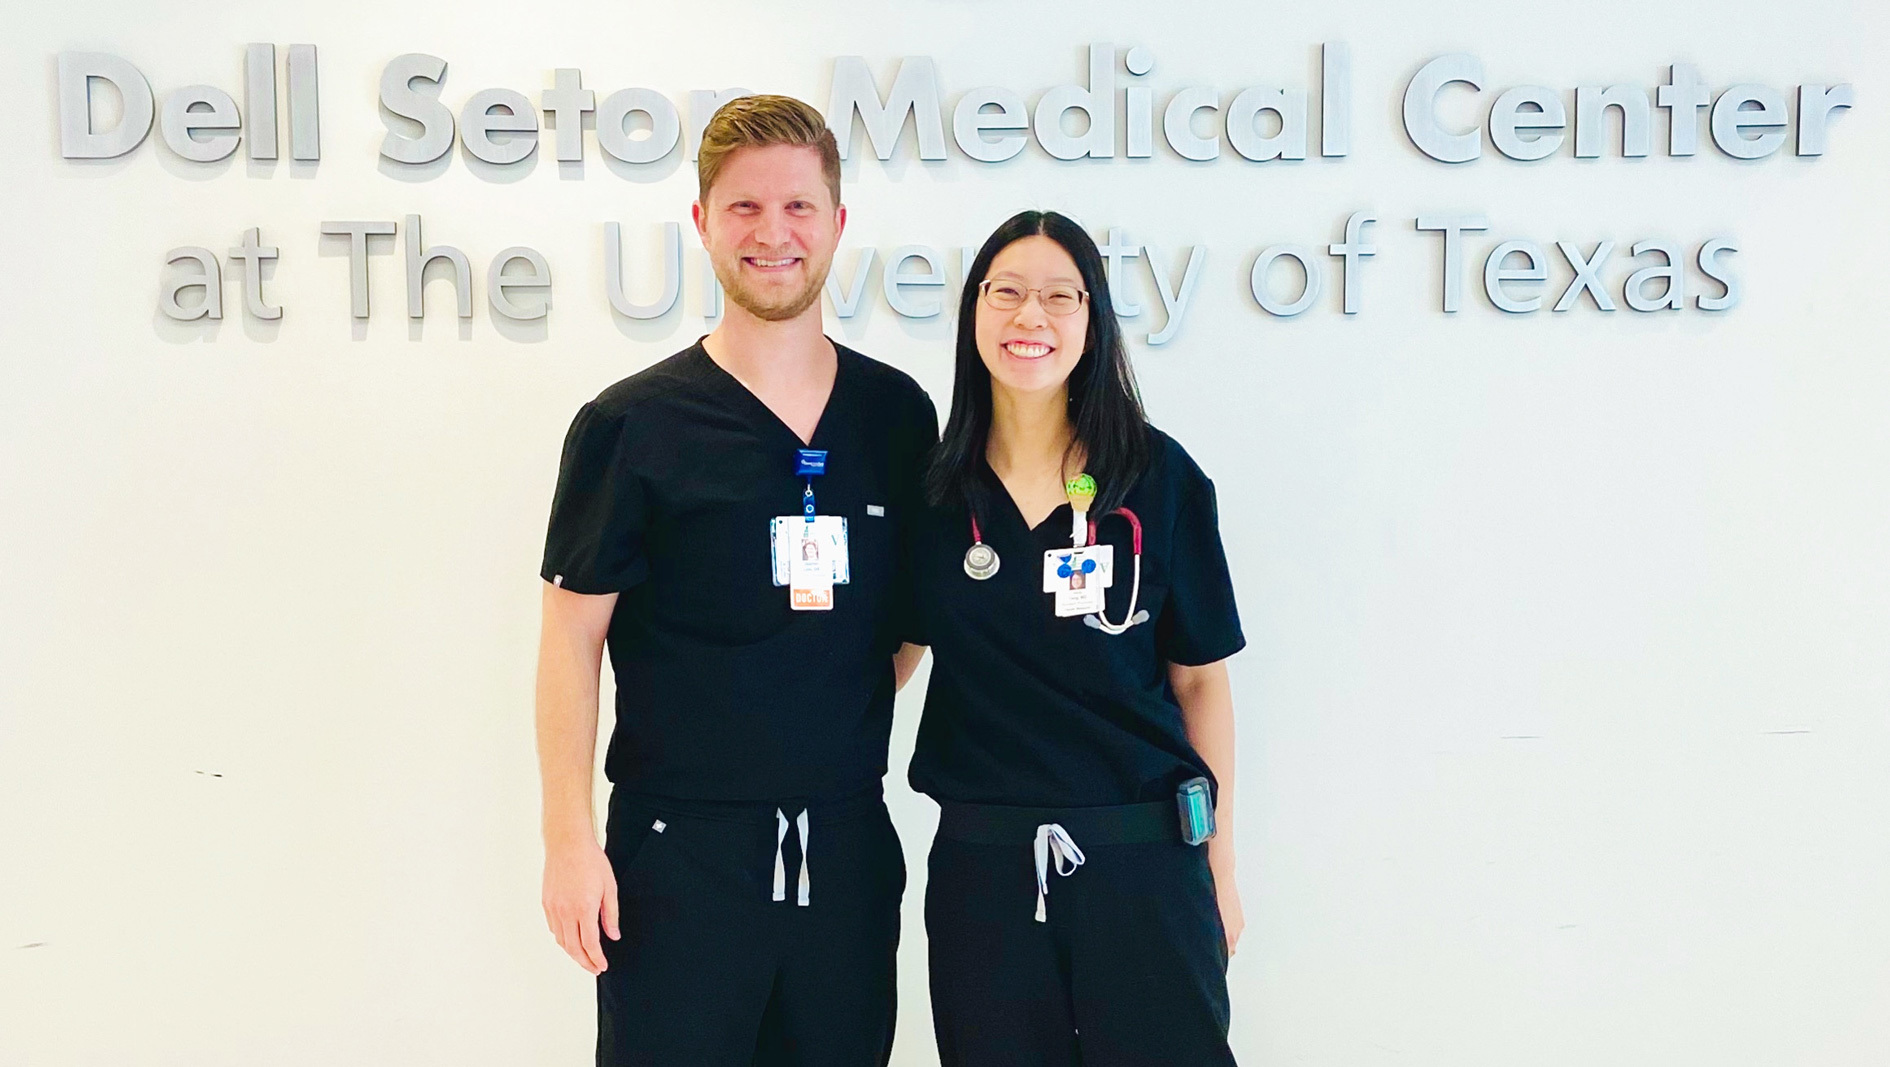 The two family medicine chief residents smiling at the camera.